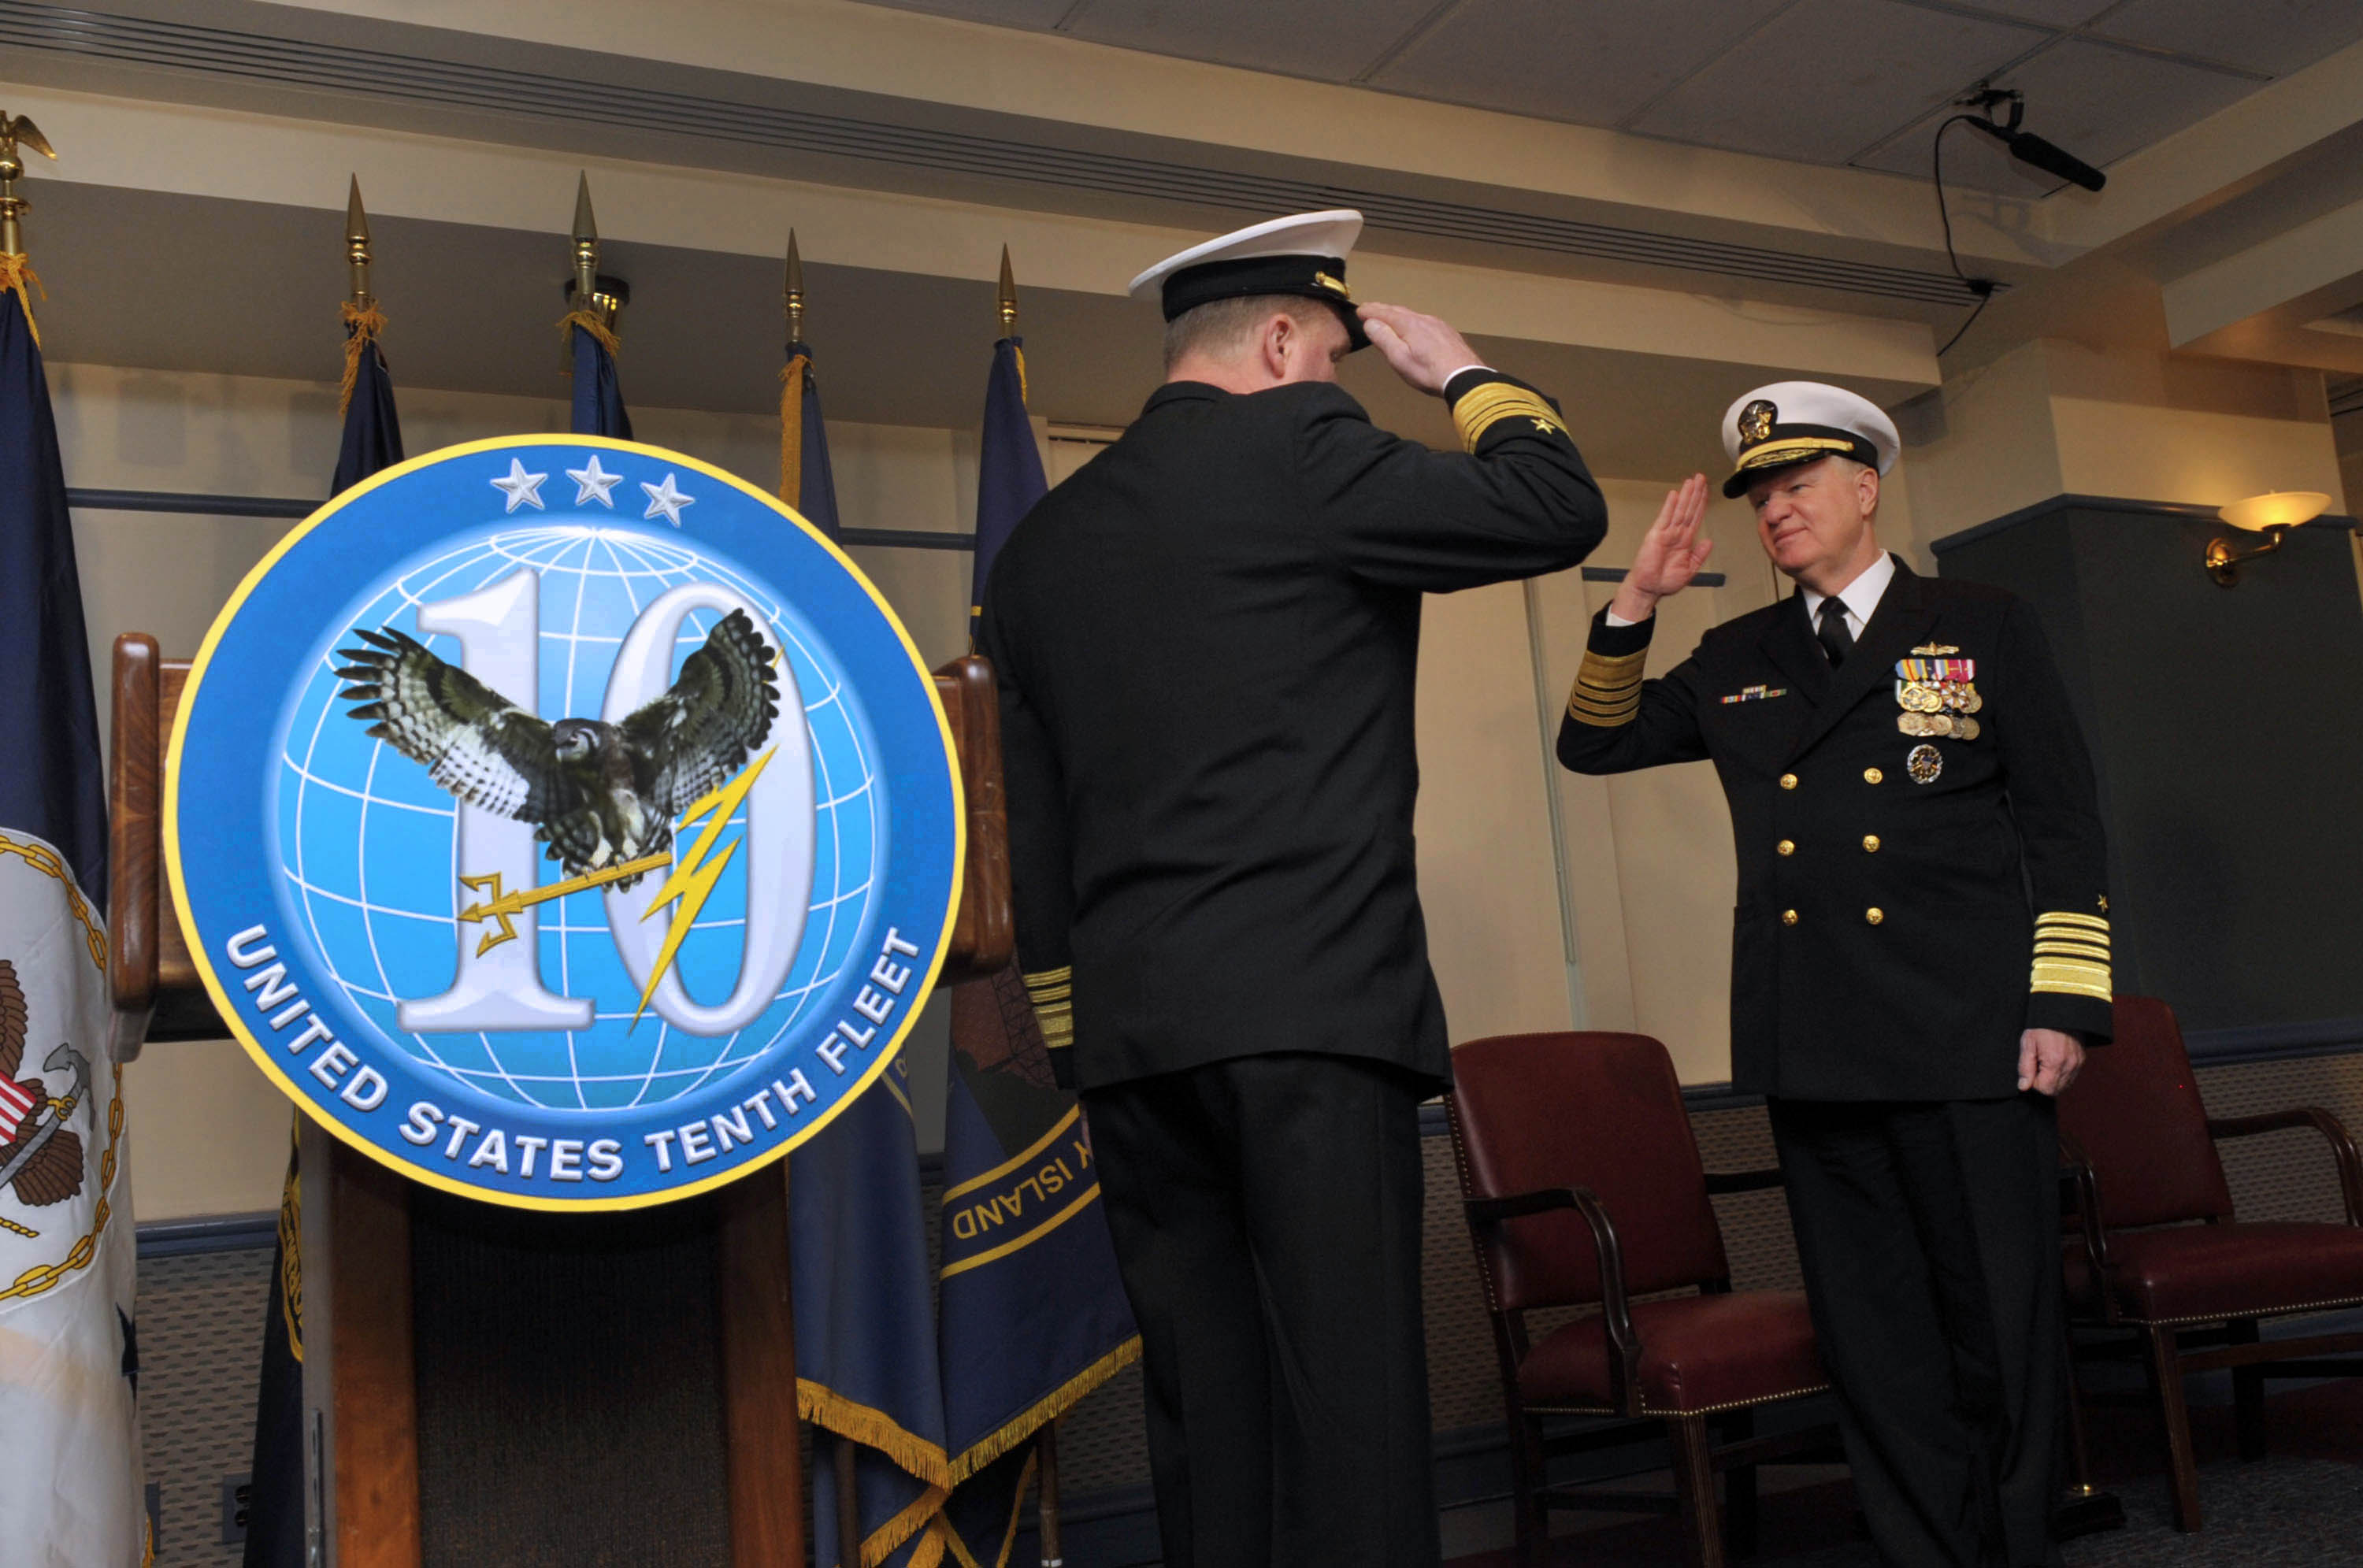 FileUS Navy 100129-N-8273J-048 Chief of Naval Operations (CNO) Adm. Gary Roughead salutes Vice Adm. Barry McCullough commander of U.S. Fleet Cyber Command ... & File:US Navy 100129-N-8273J-048 Chief of Naval Operations (CNO ...